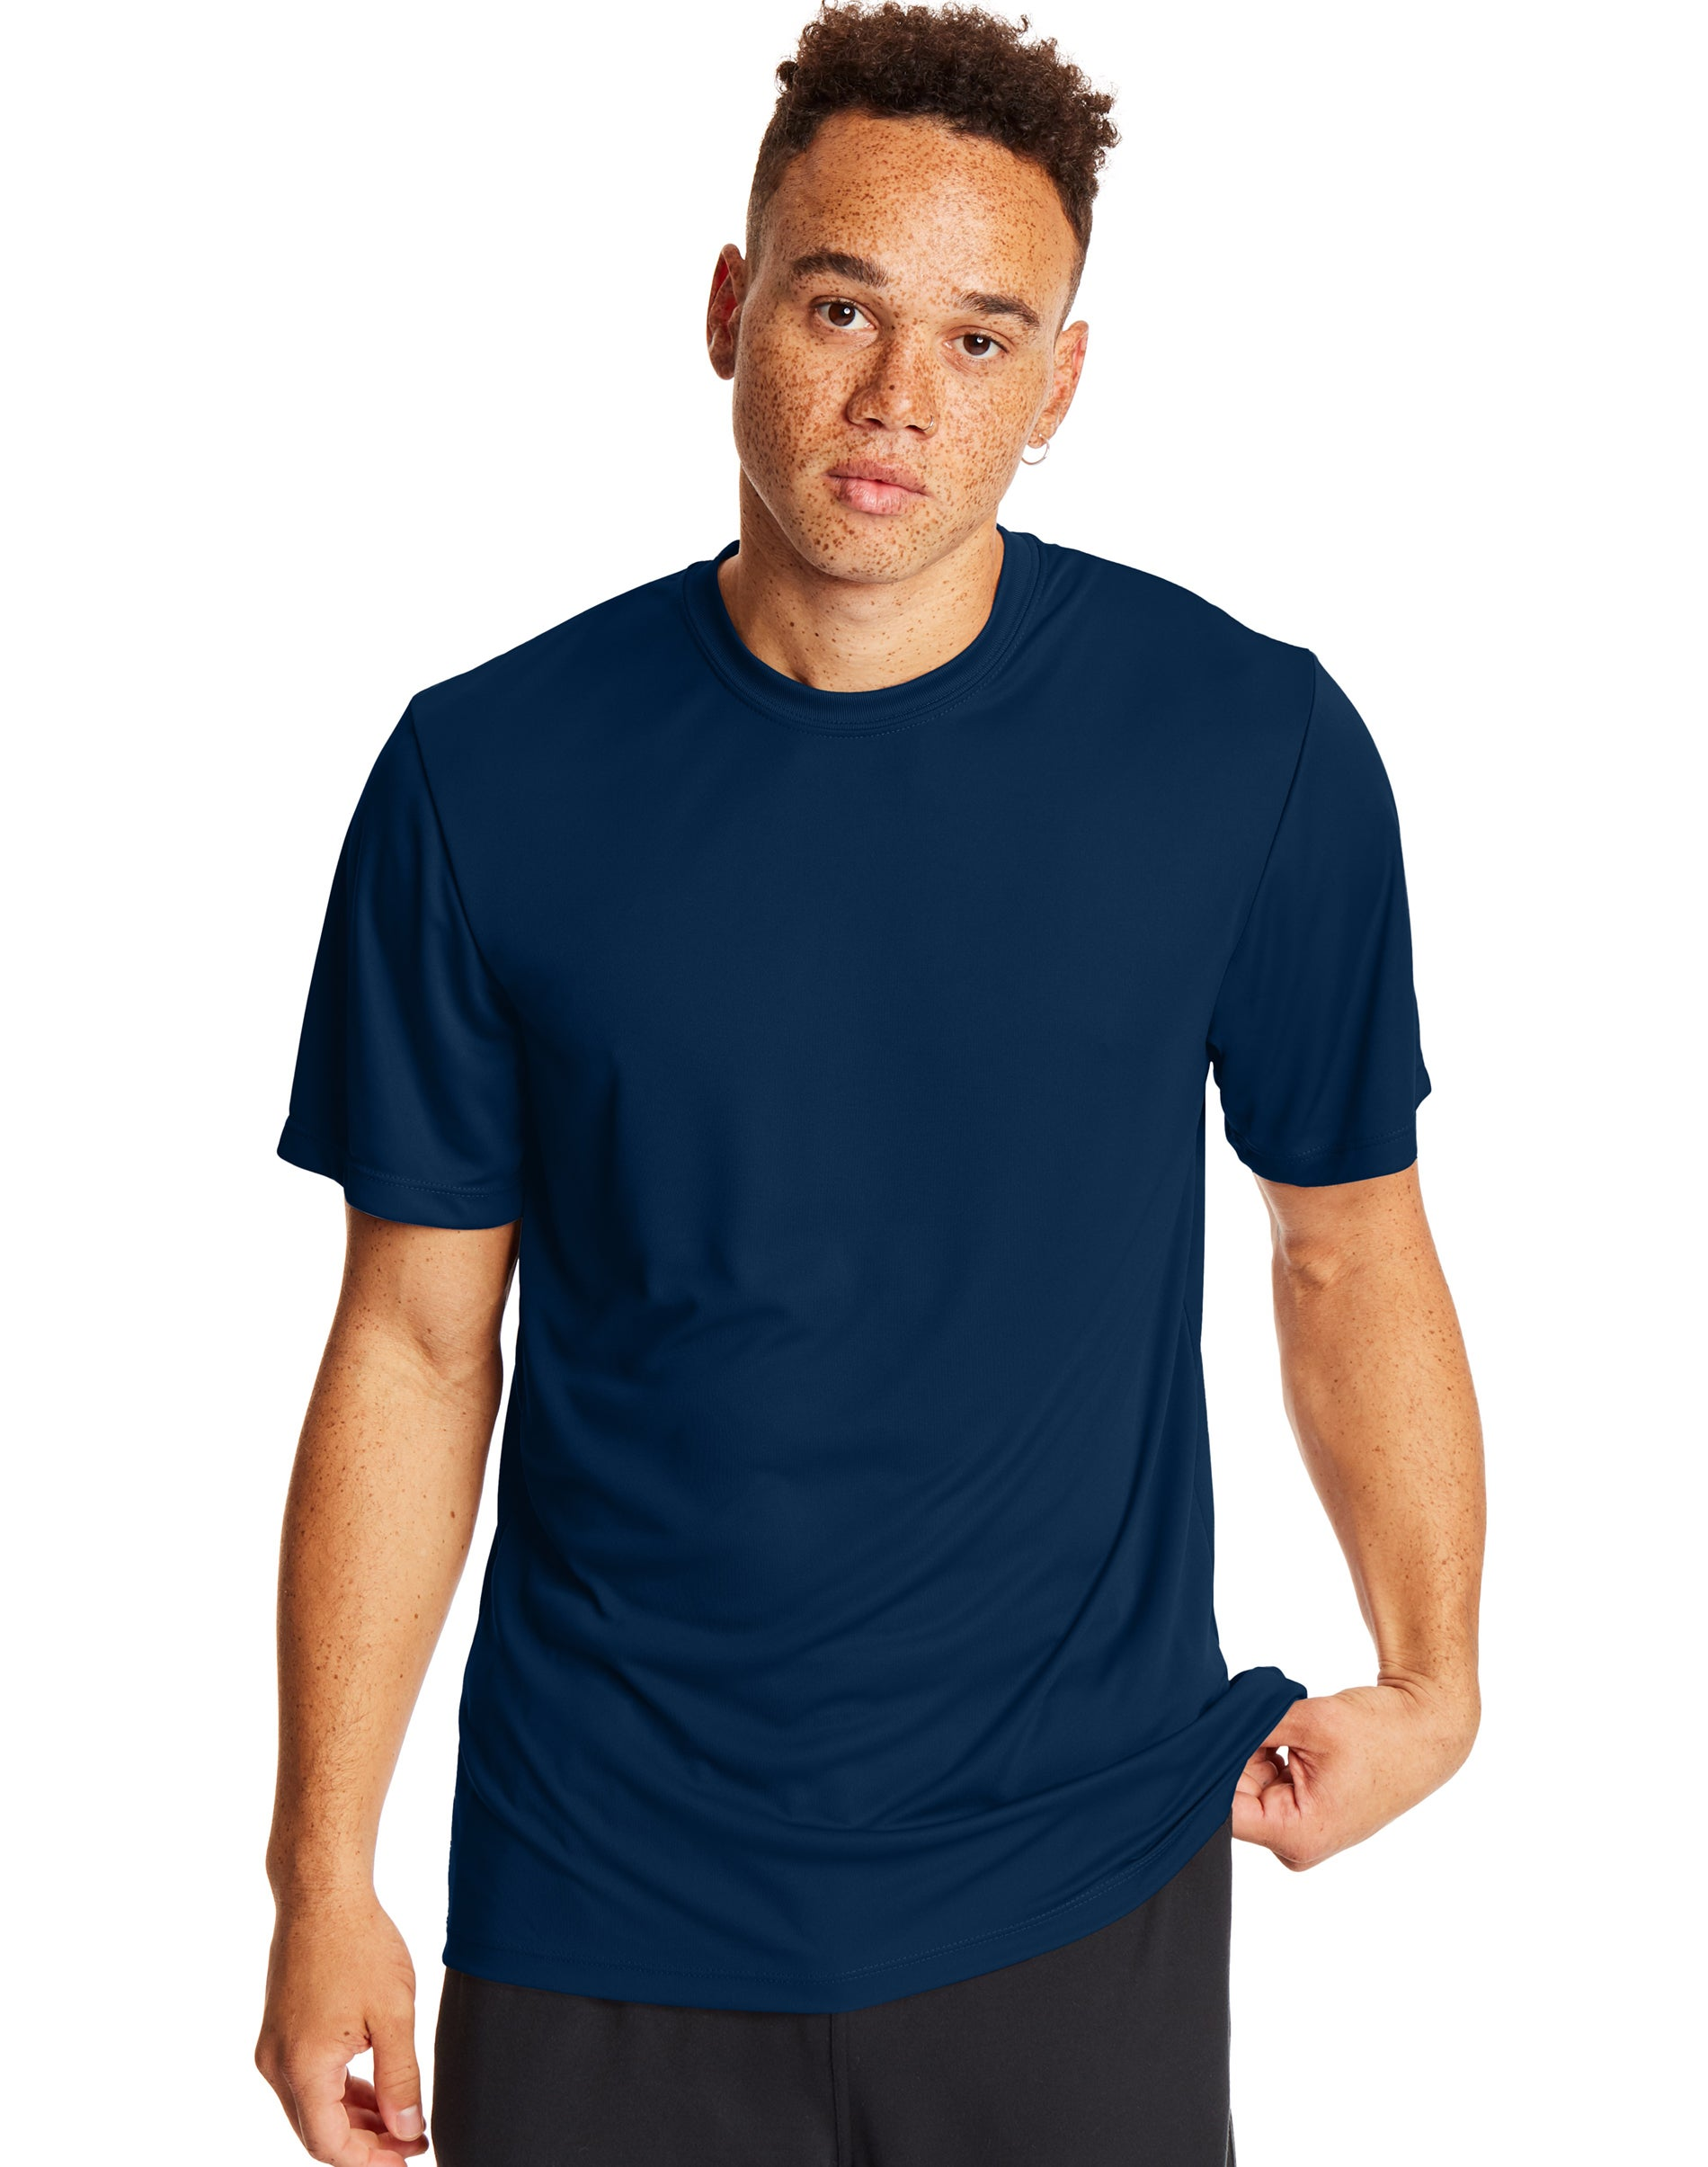 Only Boys Performance Dry-Fit T-Shirts 4 Pack